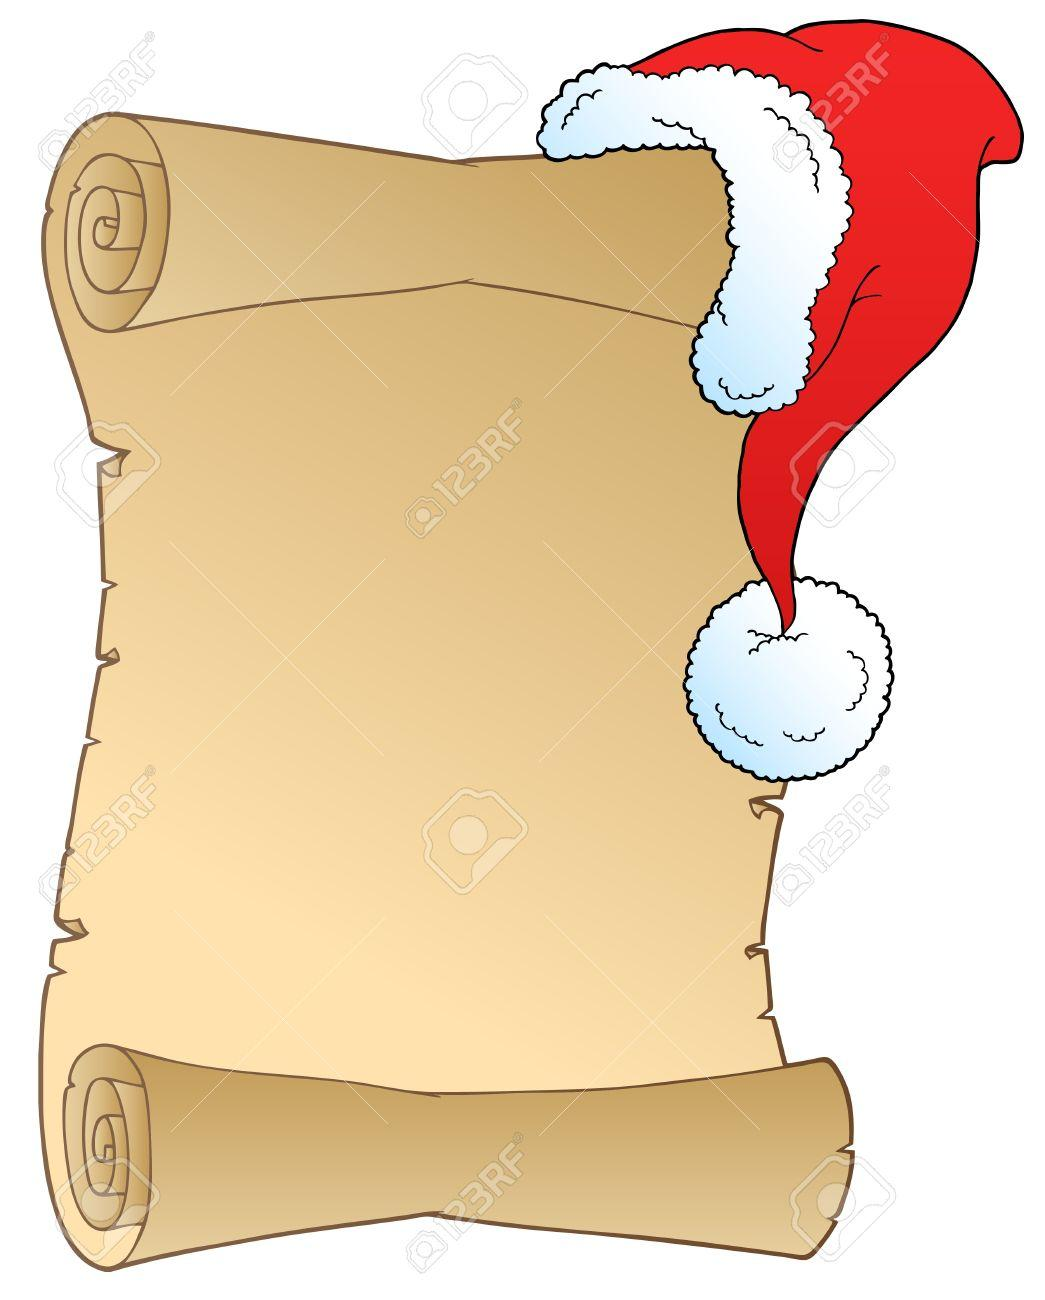 Christmas shopping list clipart png free library Christmas Shopping List Clipart (51+) png free library